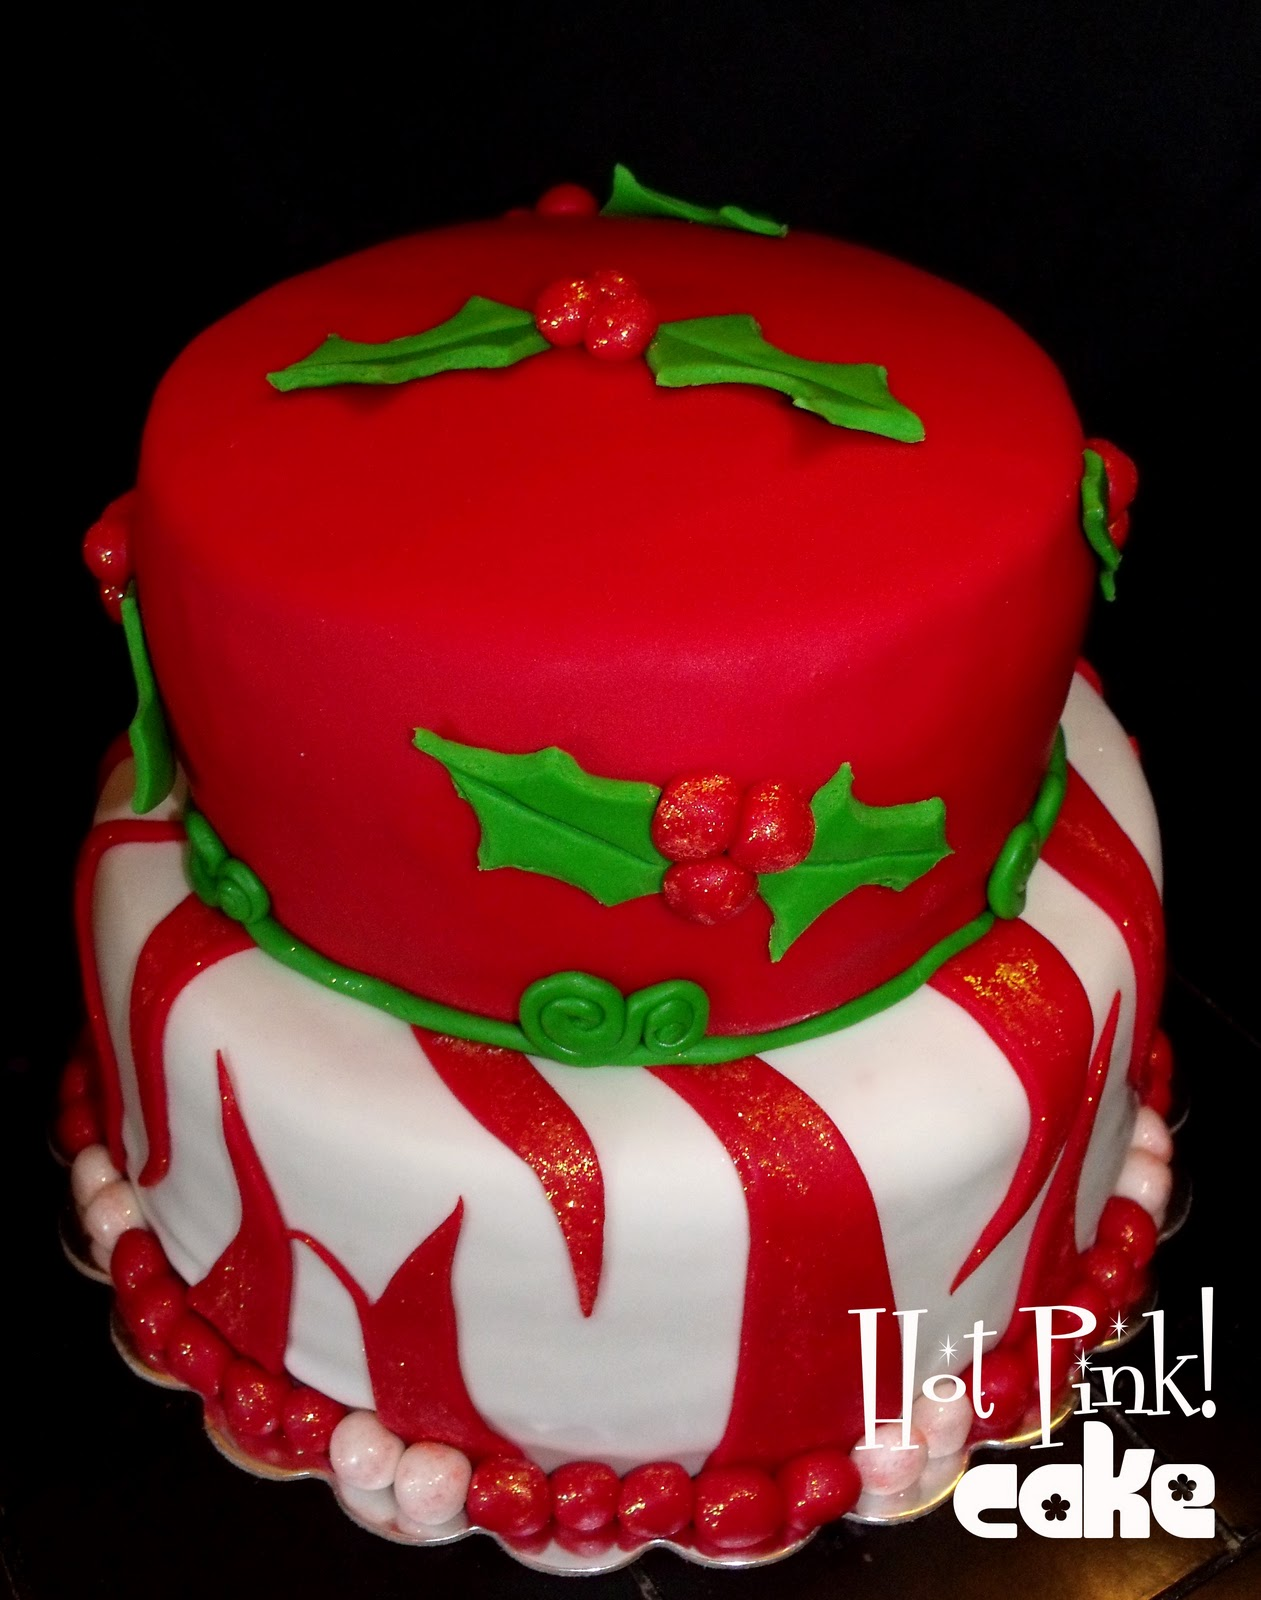 Hot Pink! Cakes: Christmas Birthday Cakes